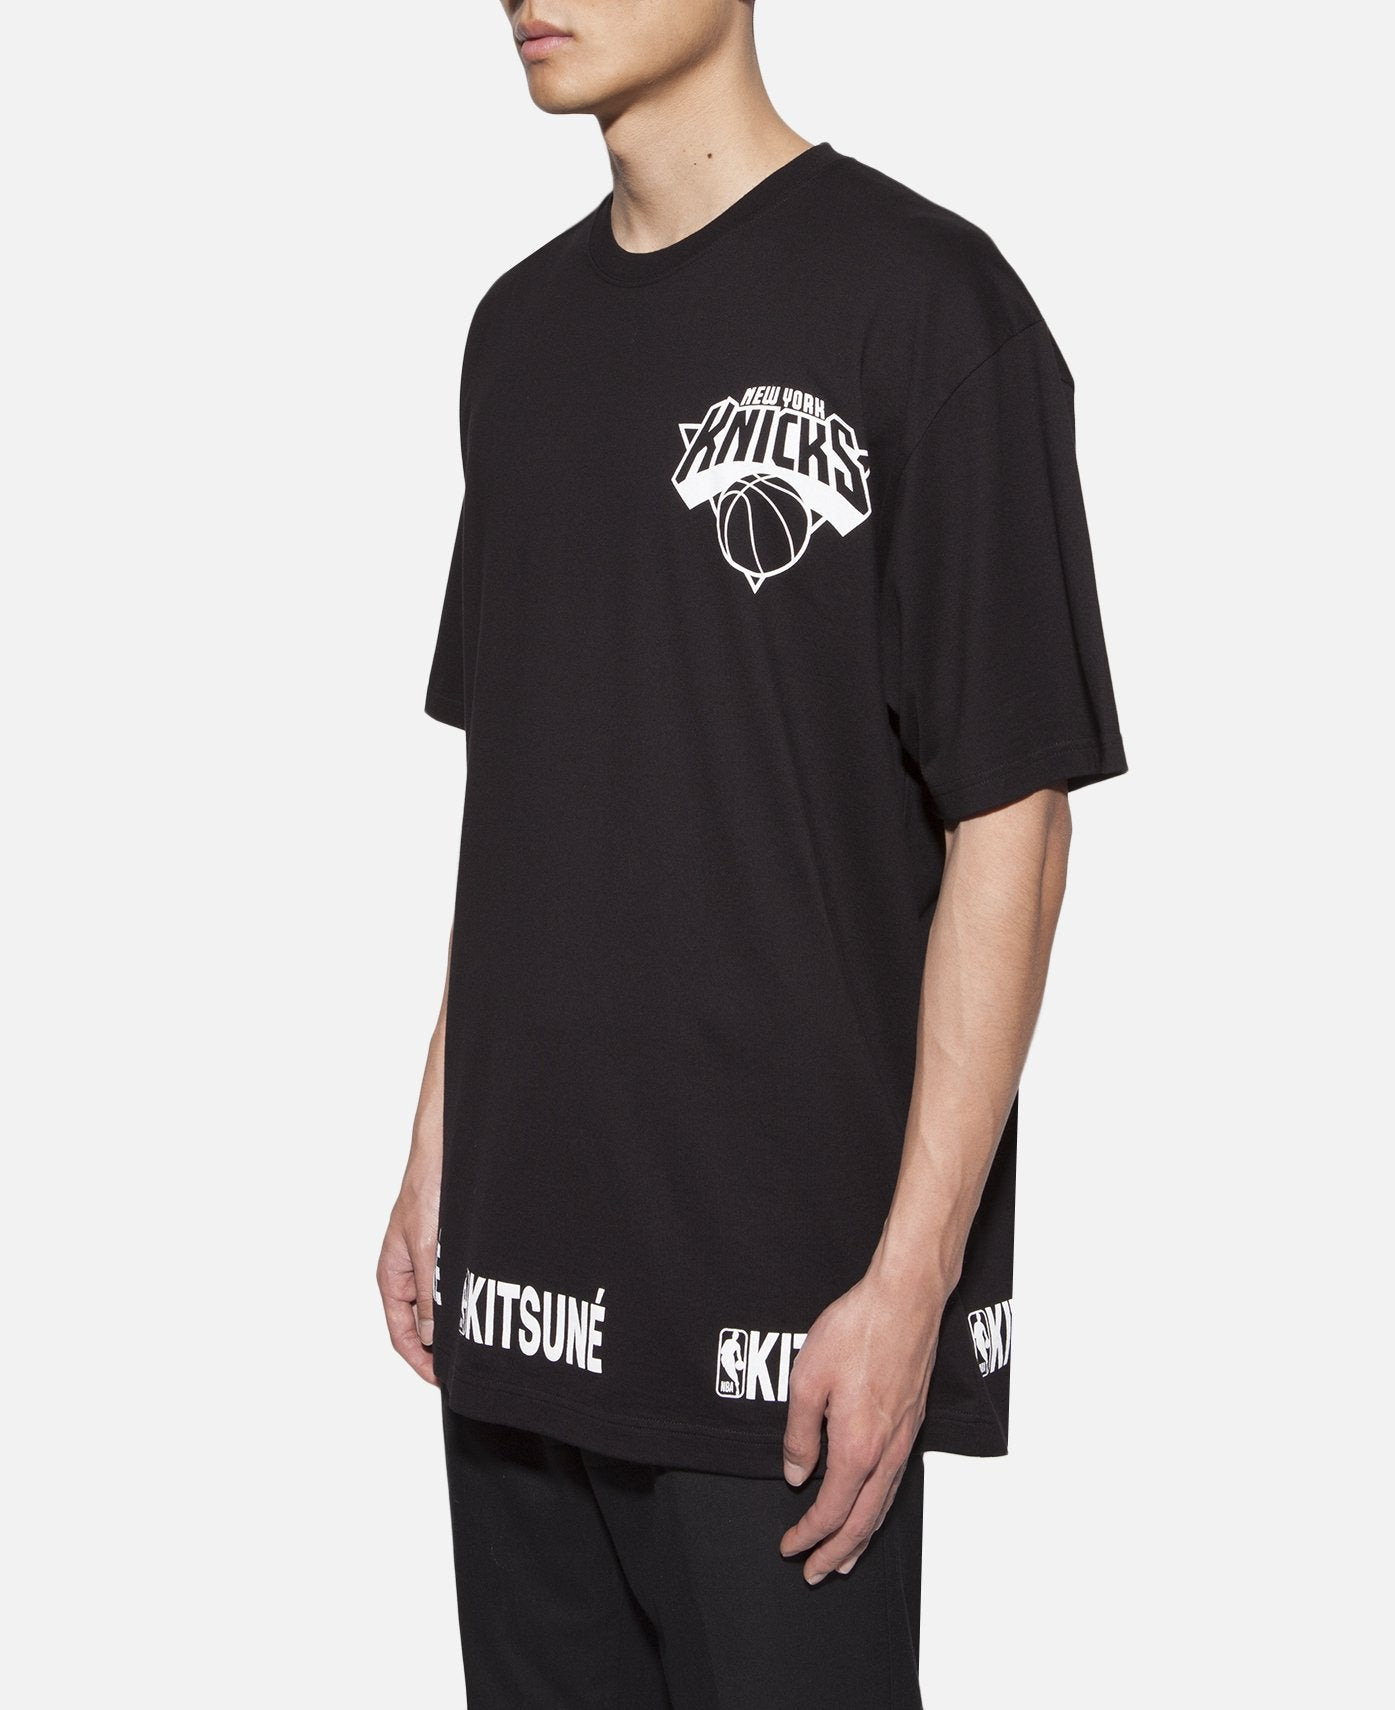 Kitsuné x NBA Tee-Shirt Knicks